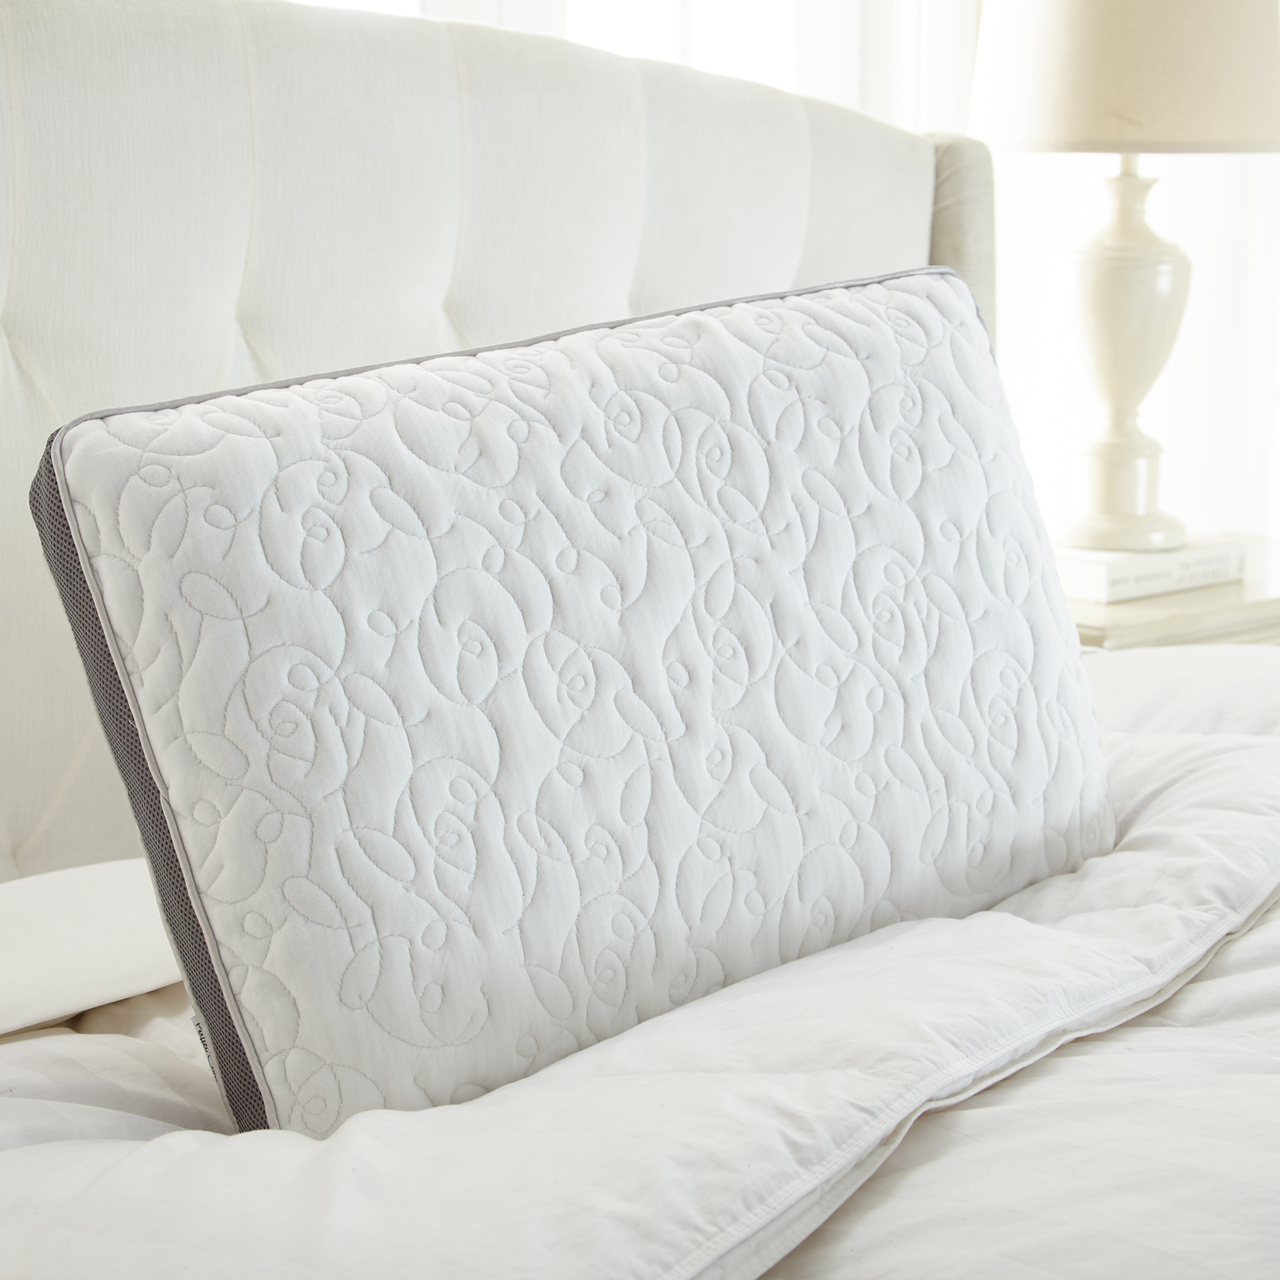 Twofold Airflow Memory Foam Pillow by Perfect Cloud